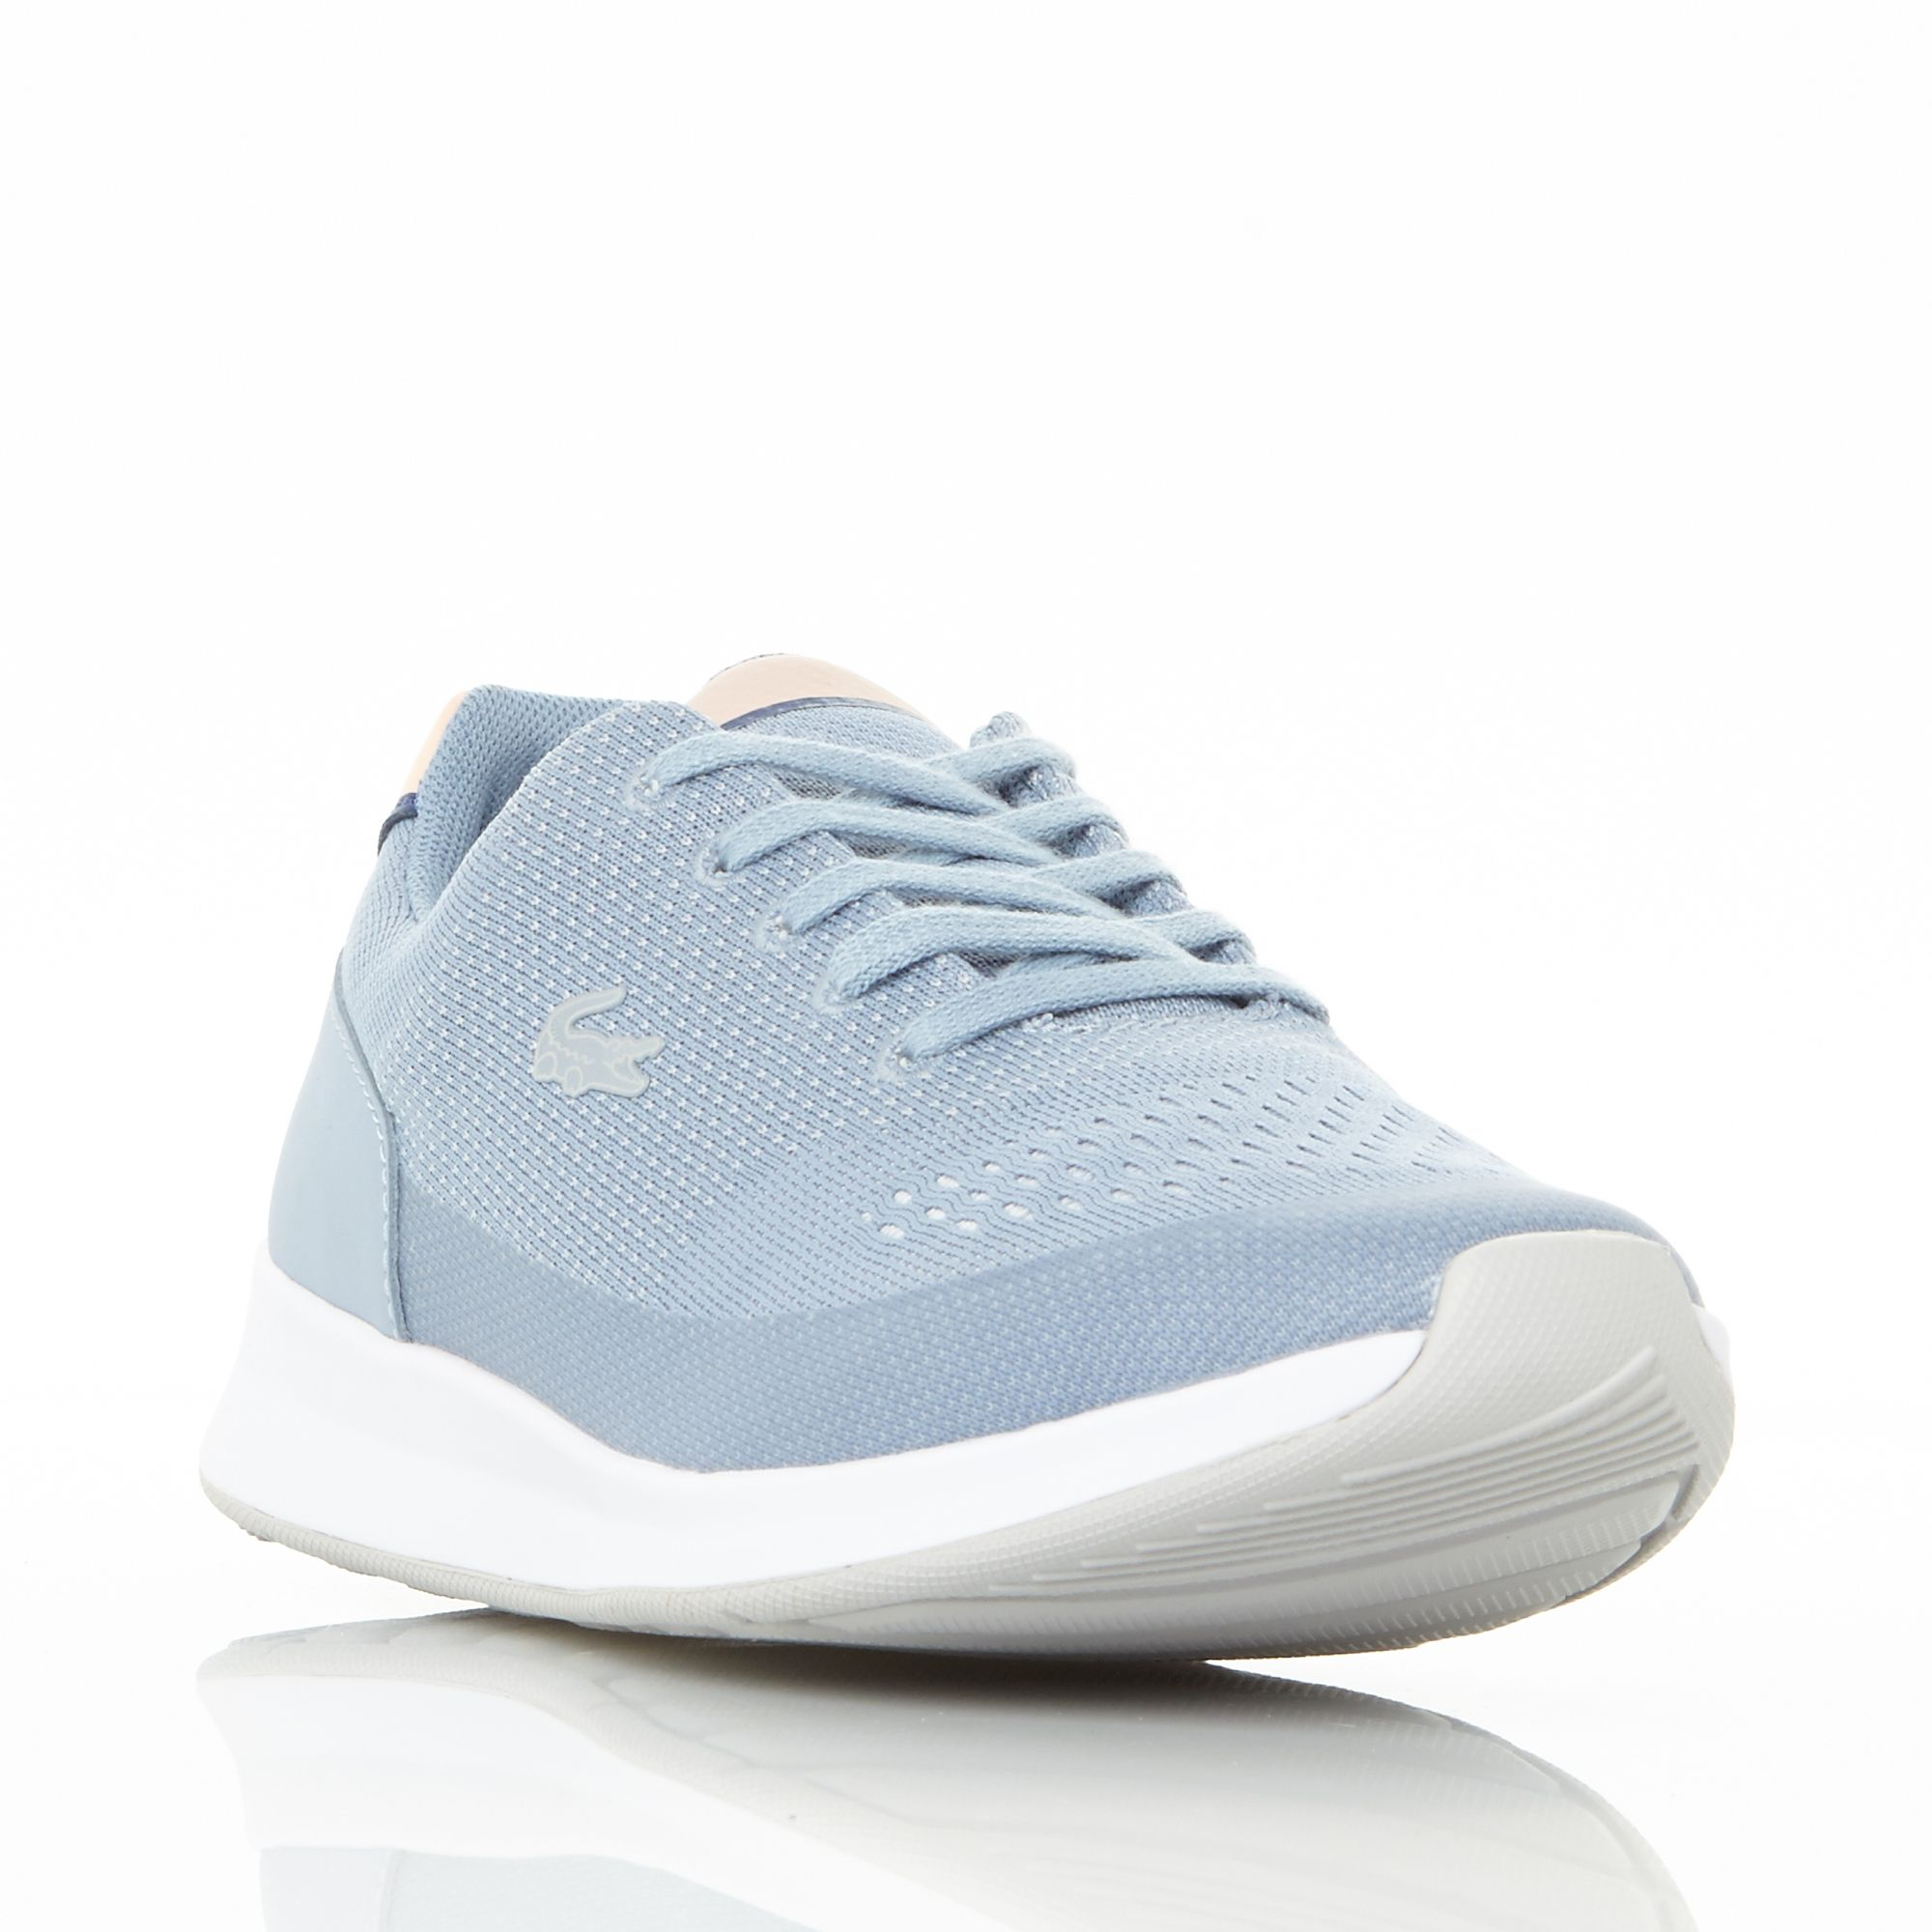 Lacoste Chaumont Knitted Runner Trainers, Blue